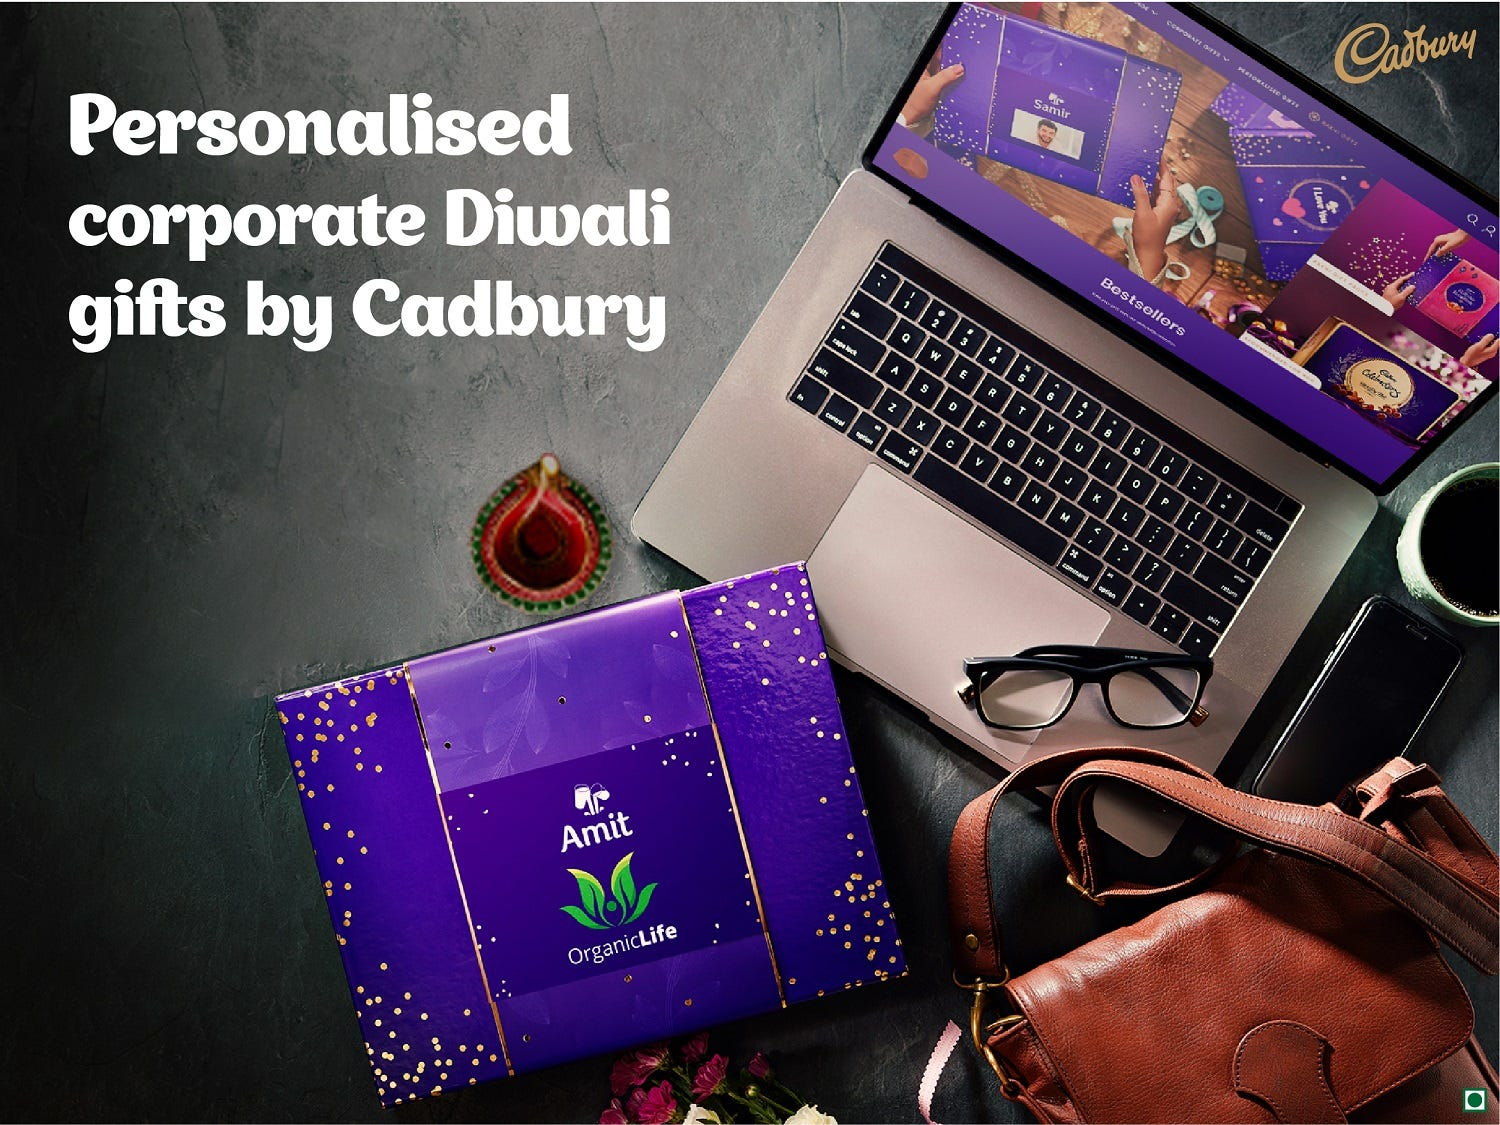 A sweet gift for your employees & business partners this Diwali